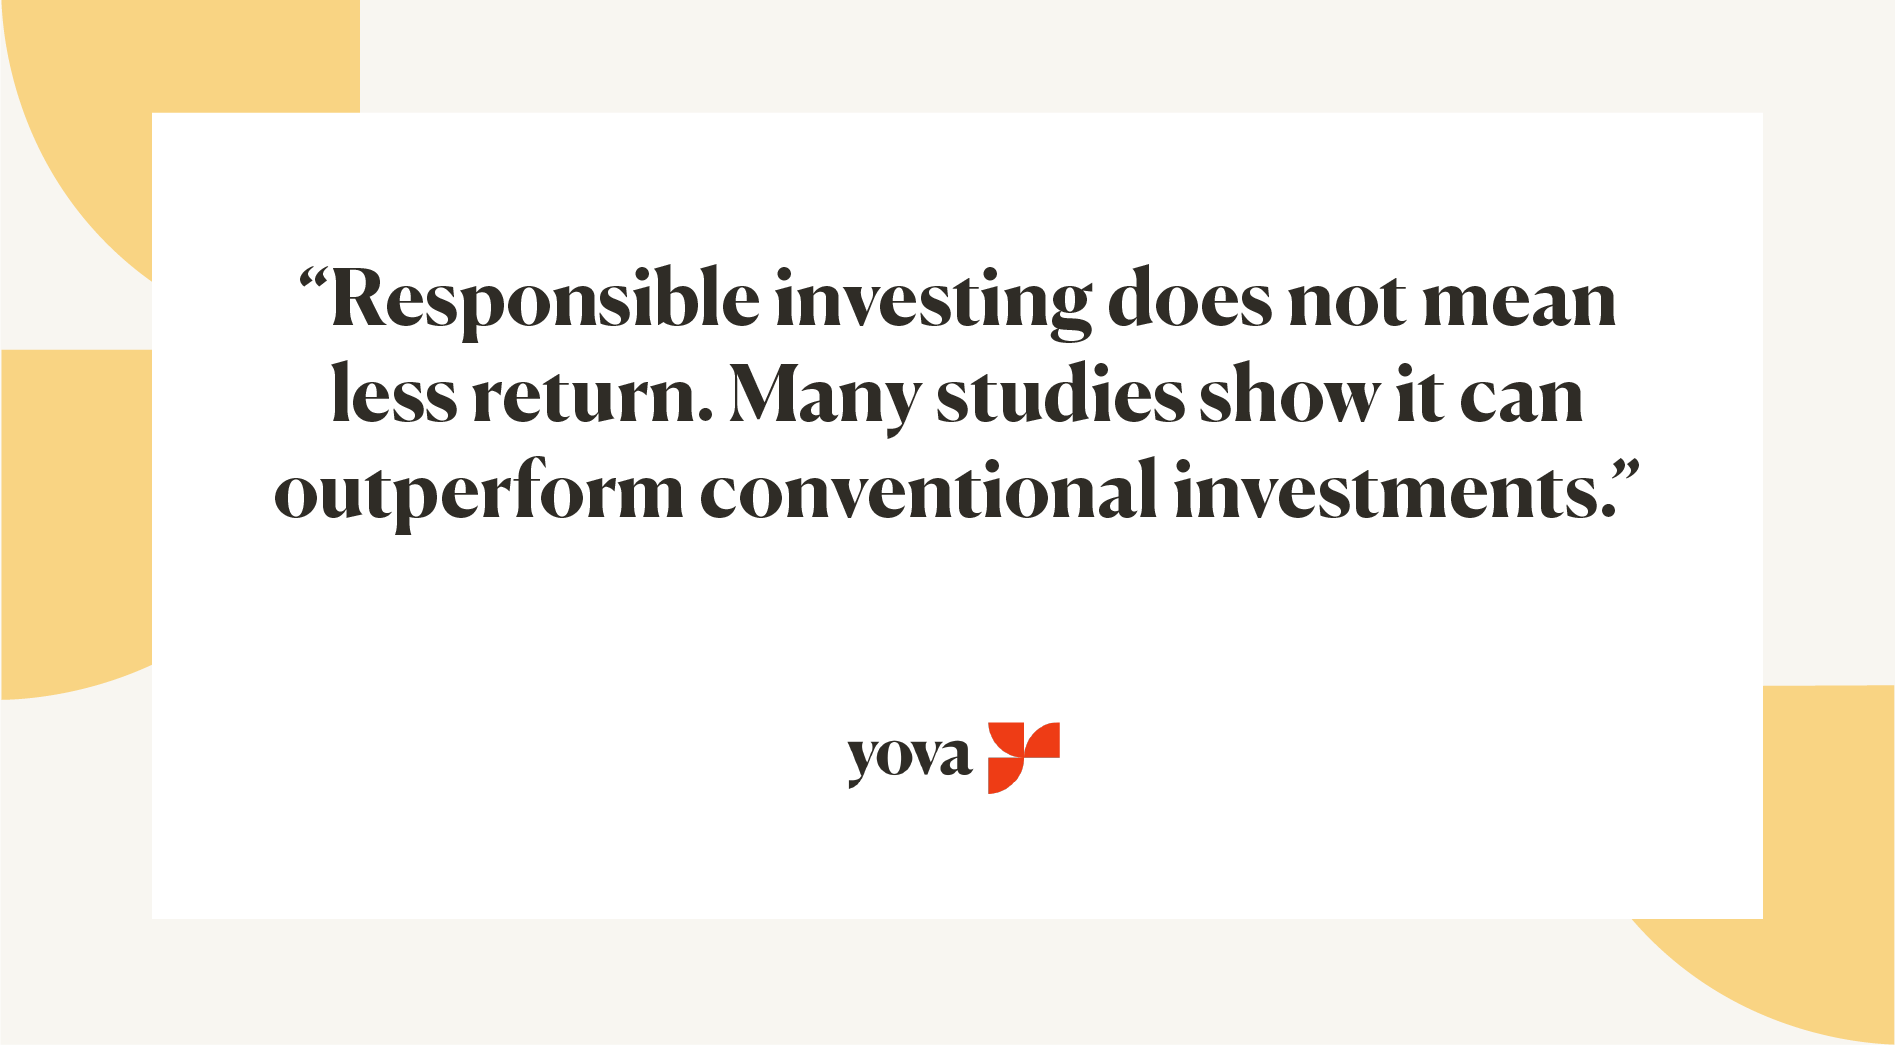 Quote: Responsible investing does not mean less return. Many studies show it can outperform conventional inestments.